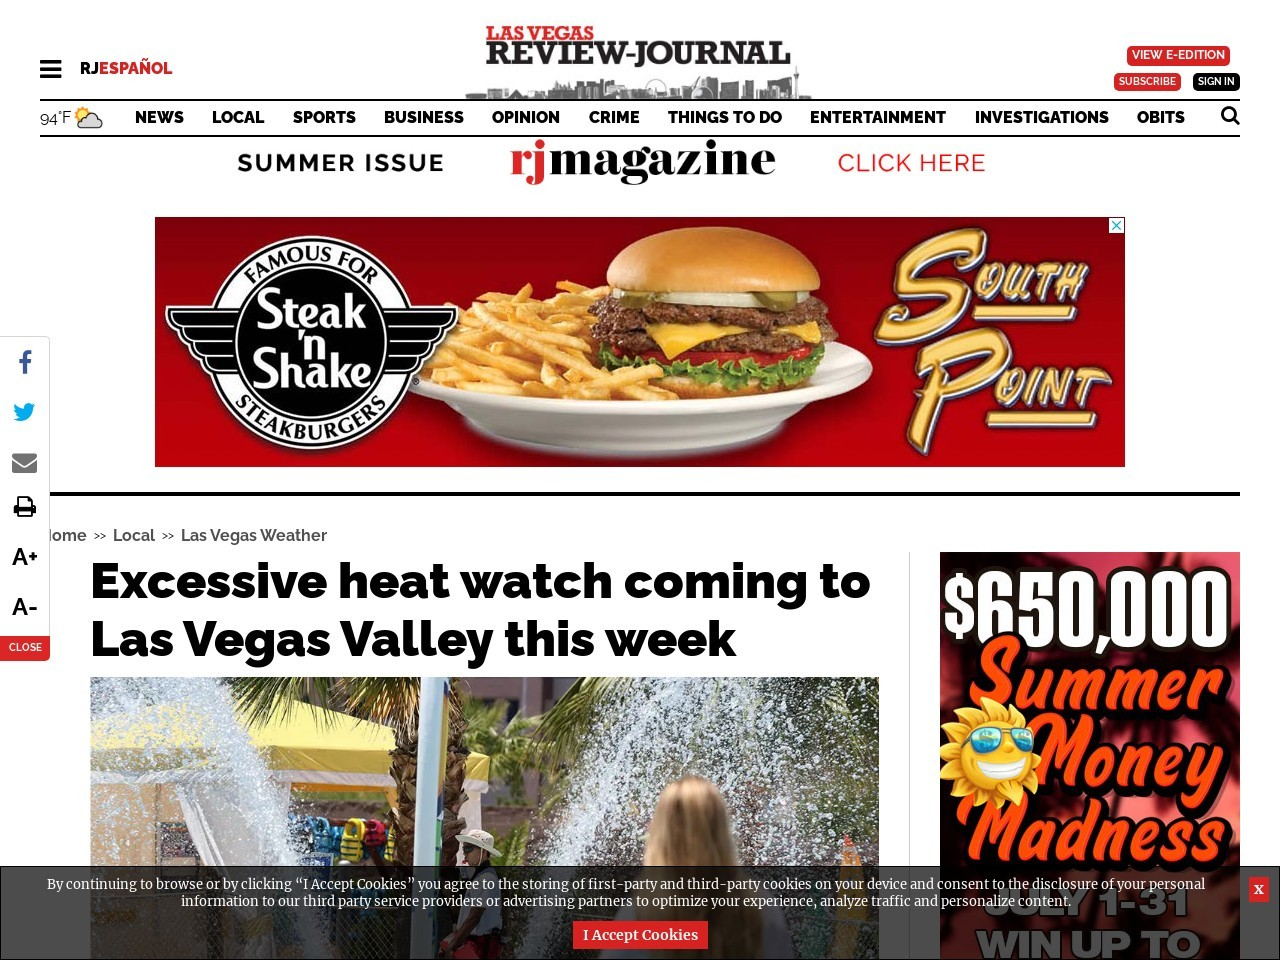 Excessive heat watch coming to Las Vegas Valley this week